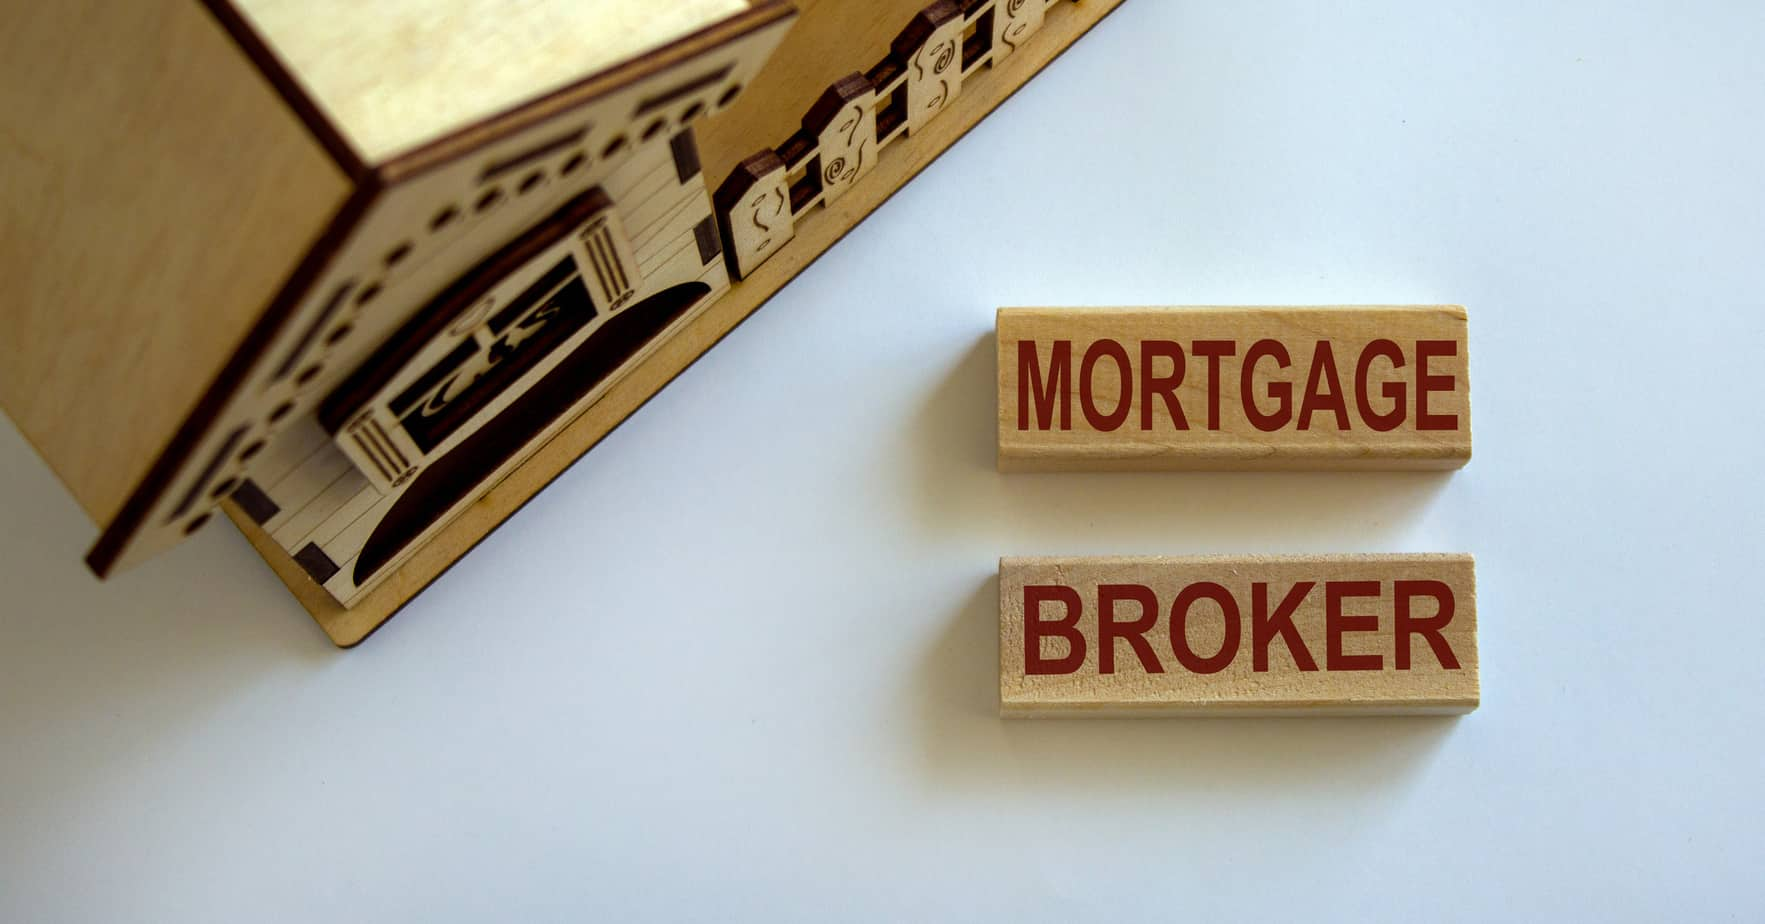 Union County Mortgage Broker